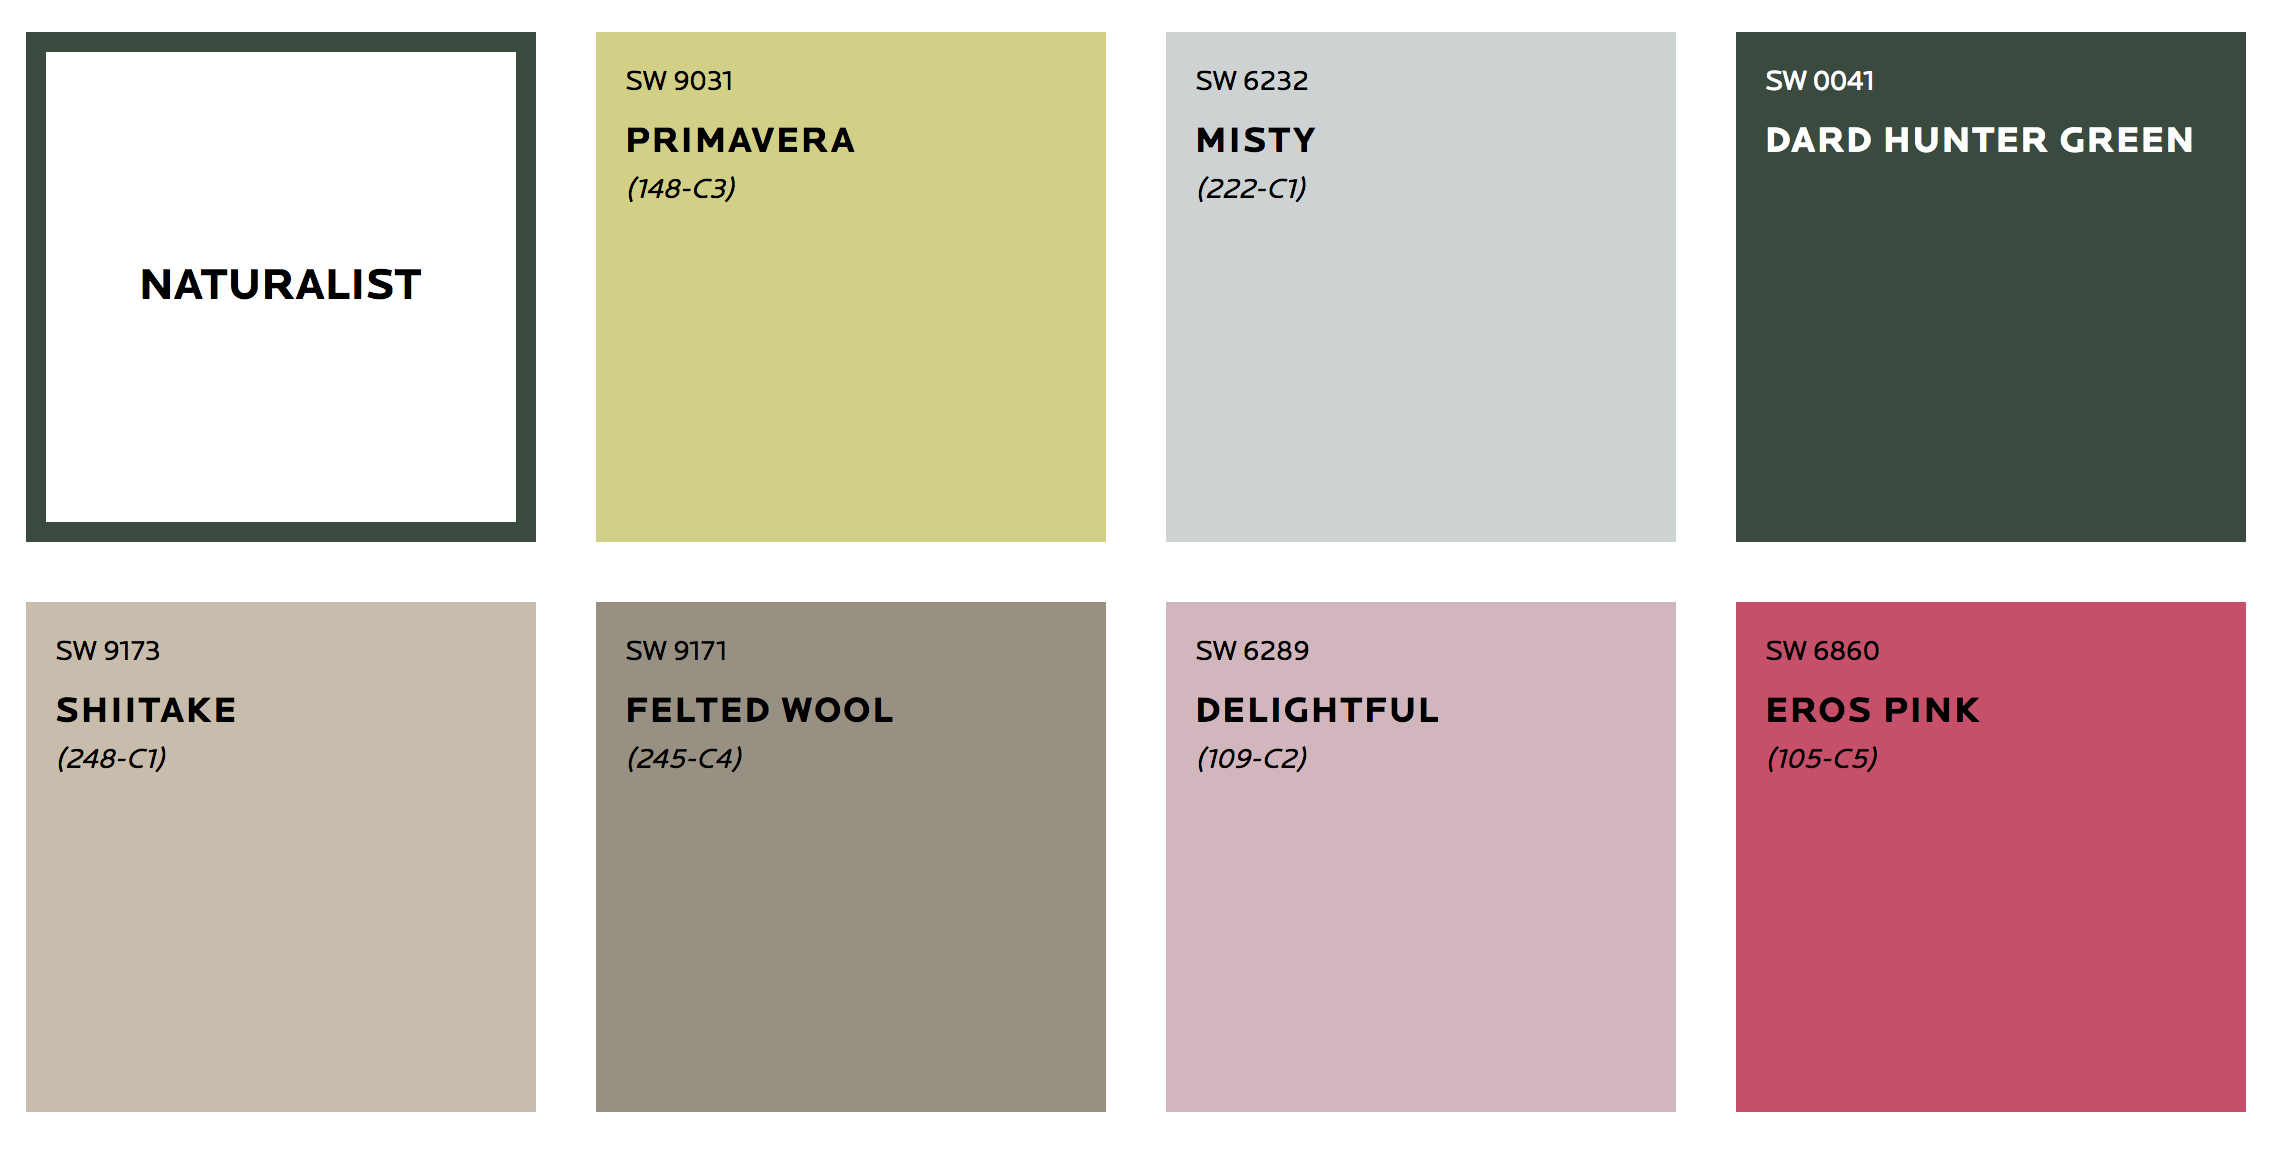 Find Out Here What Colors Are Trending In 2019 Calendar 4 2019 calendar Find Out Here Which Colors Are Trending In 2019 Calendar Find Out Here What Colors Are Trending In 2019 Calendar 4